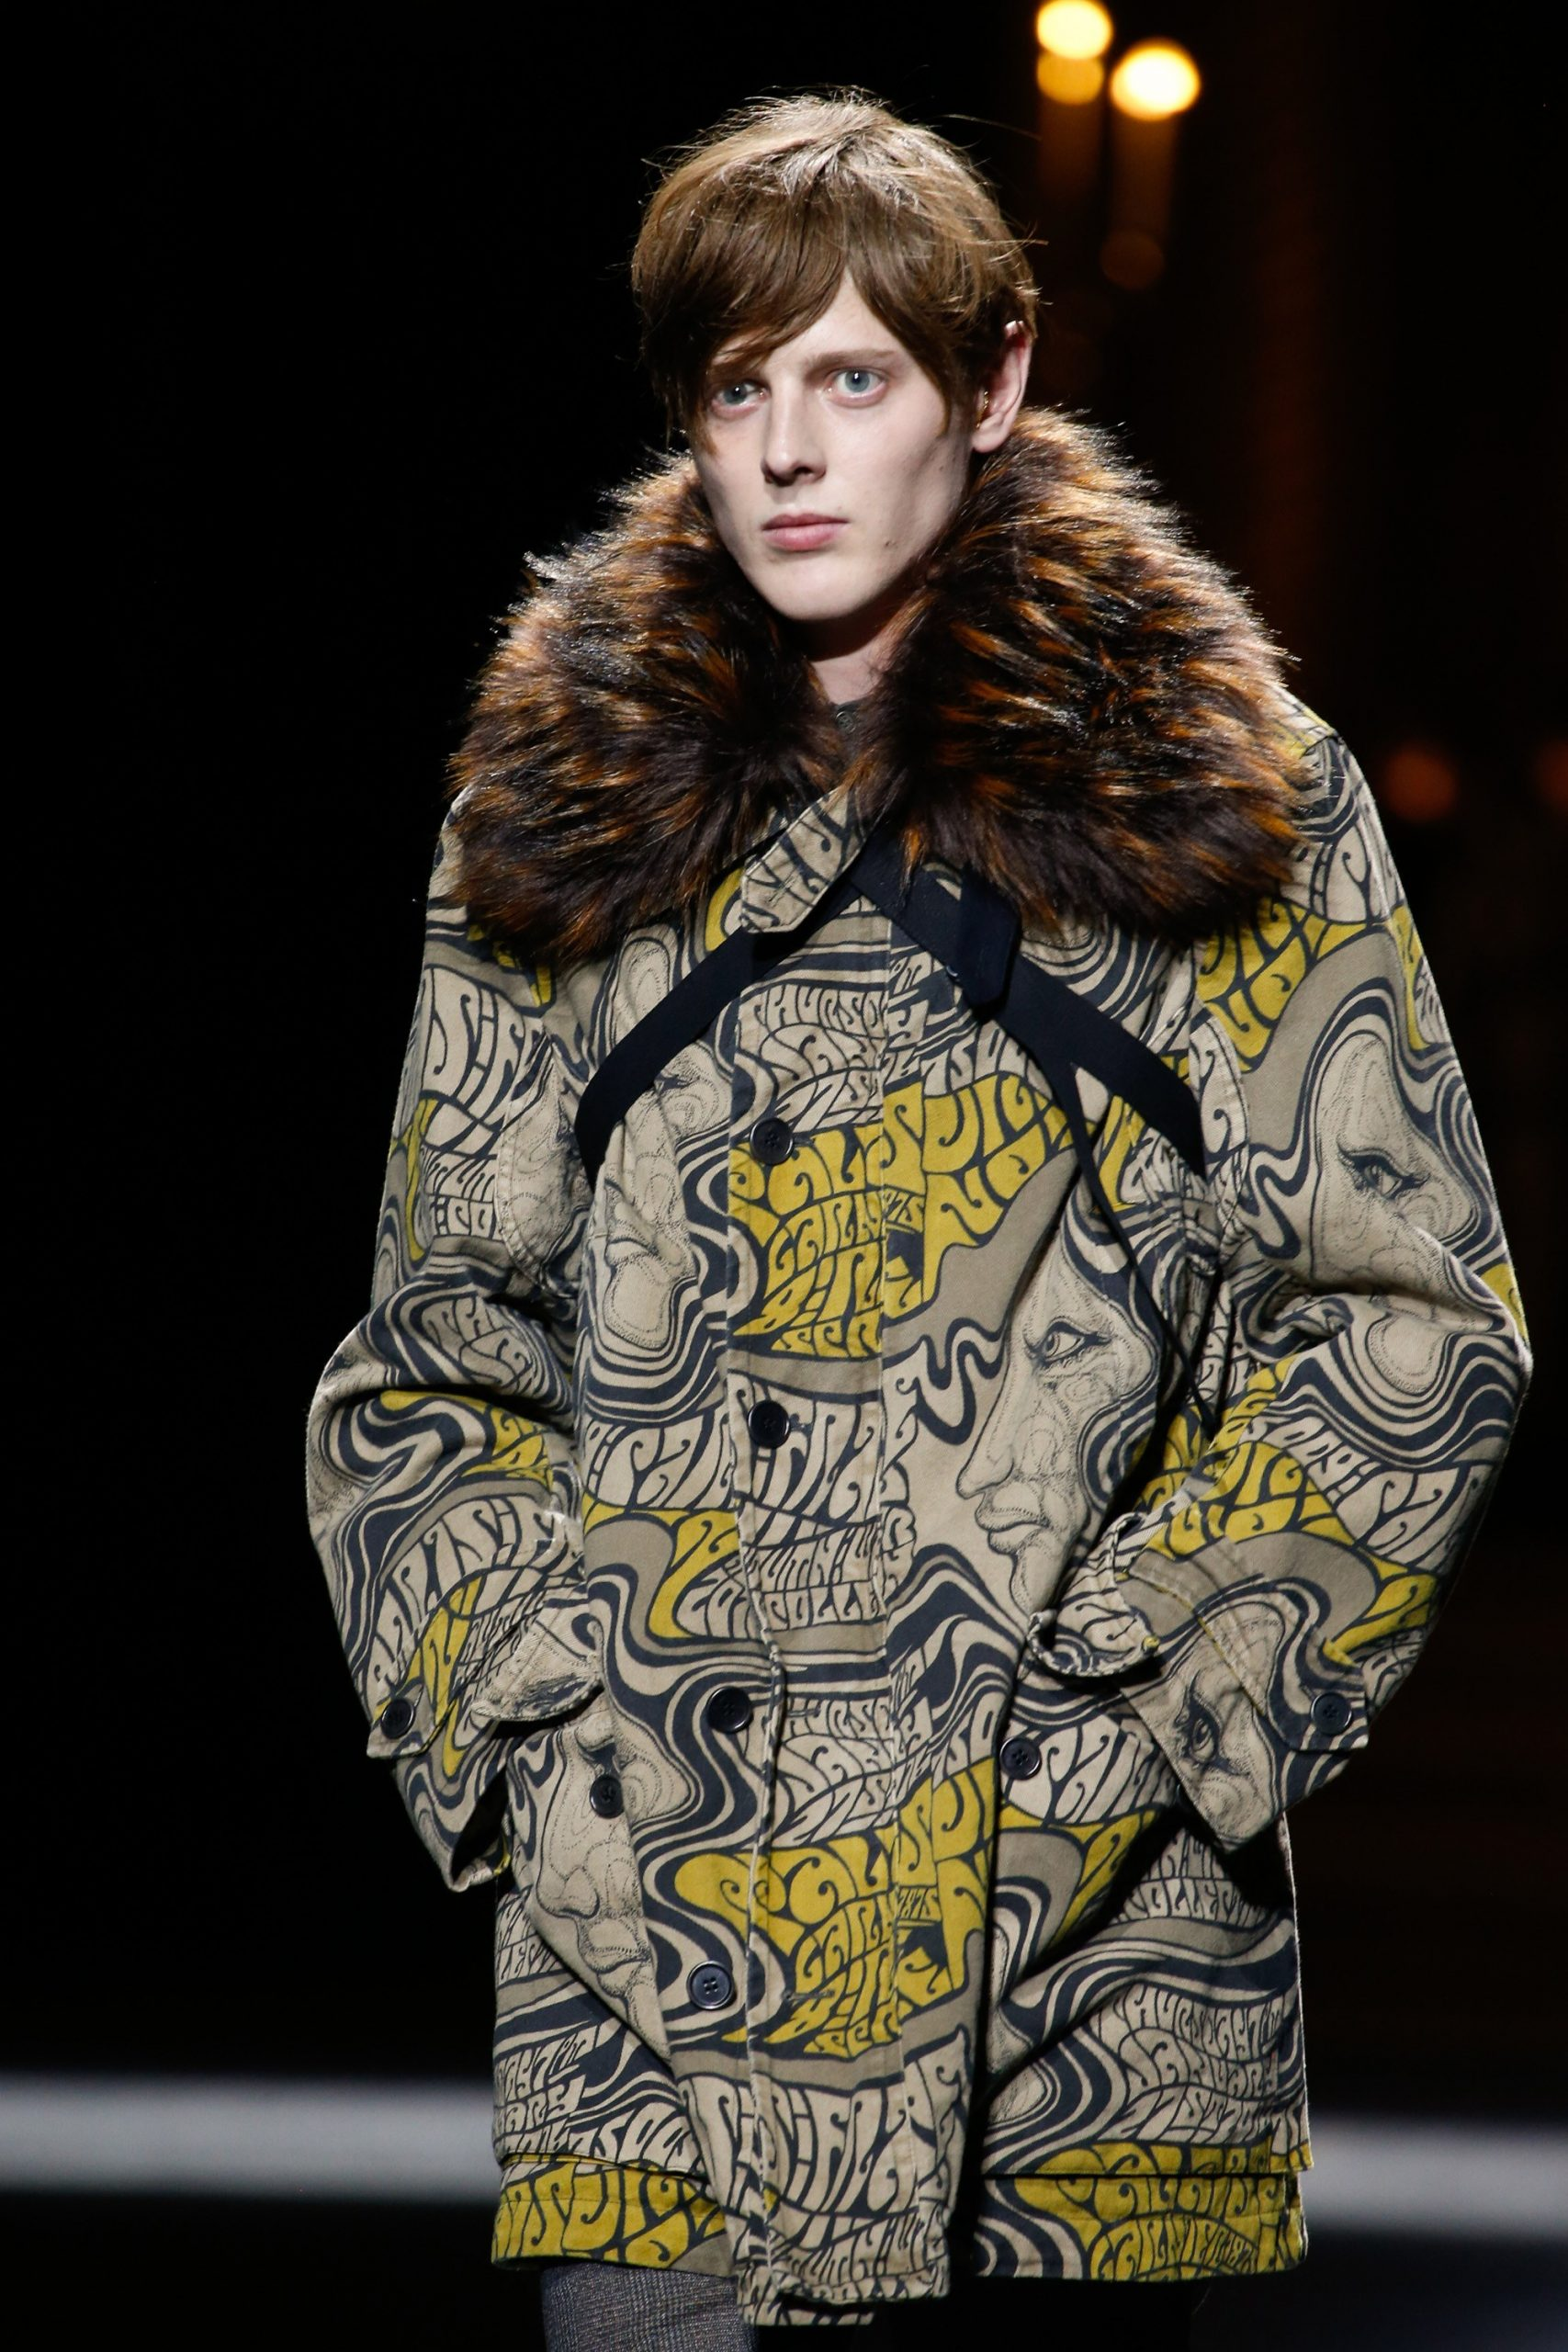 photograph of a male model walking a runway wearing a psychedelic era inspired coat